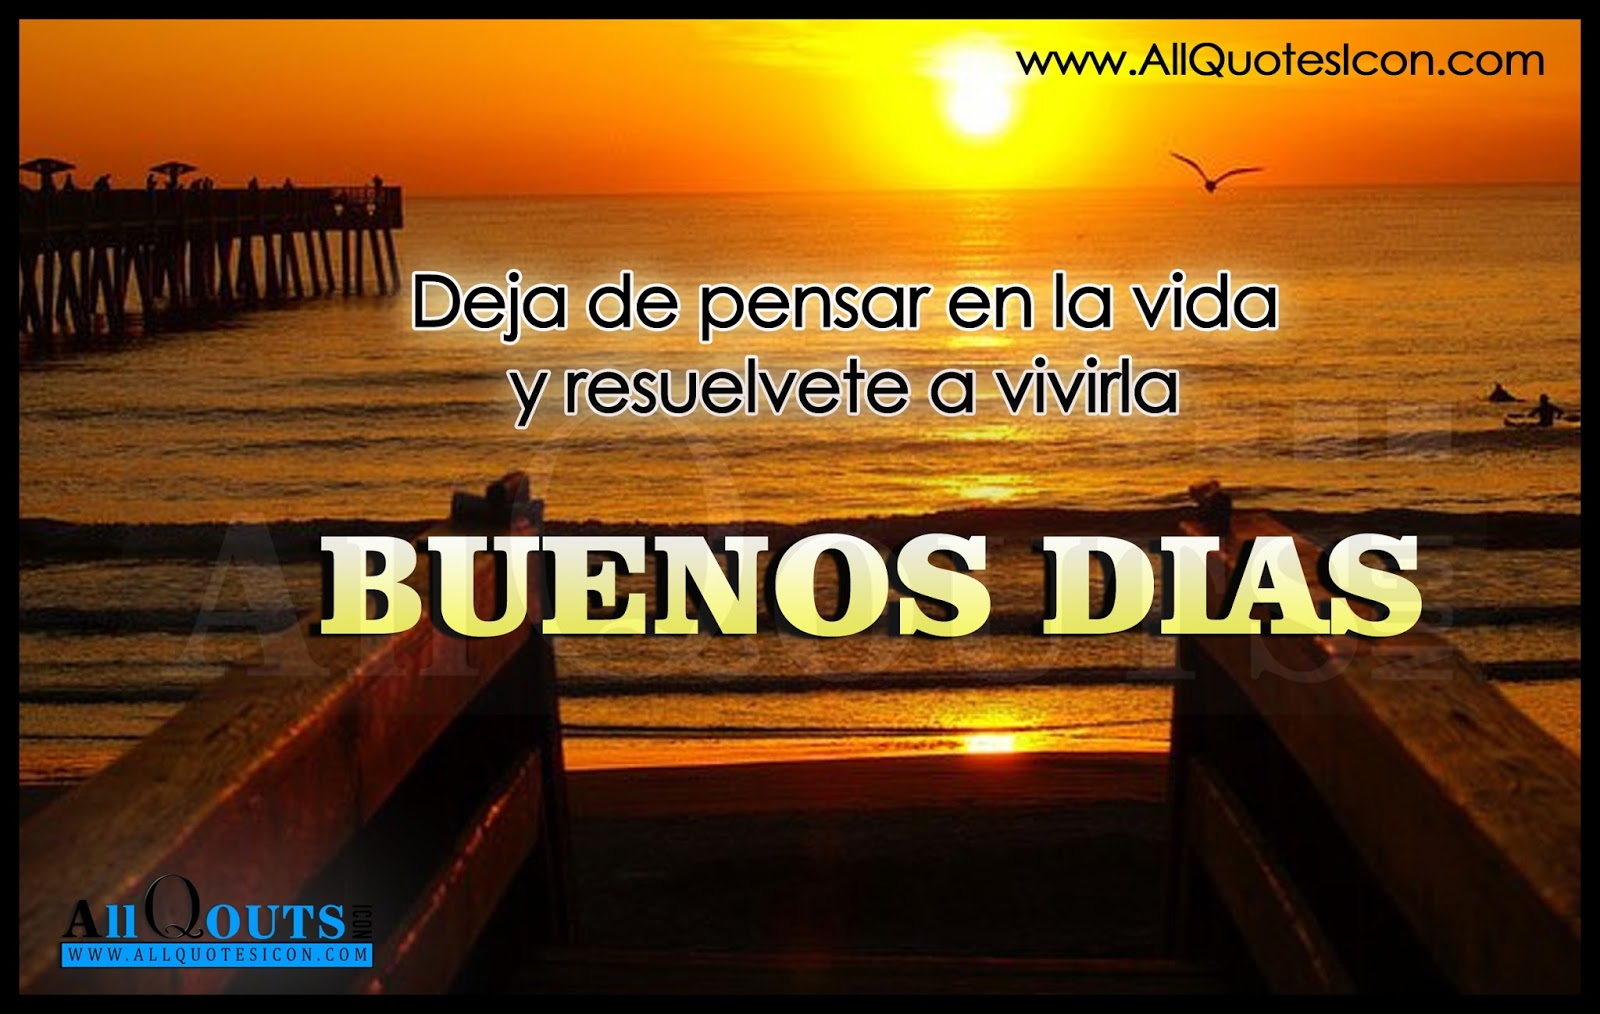 Spanish Good Morning Quotes And Greetings Wwwallquotesiconcom